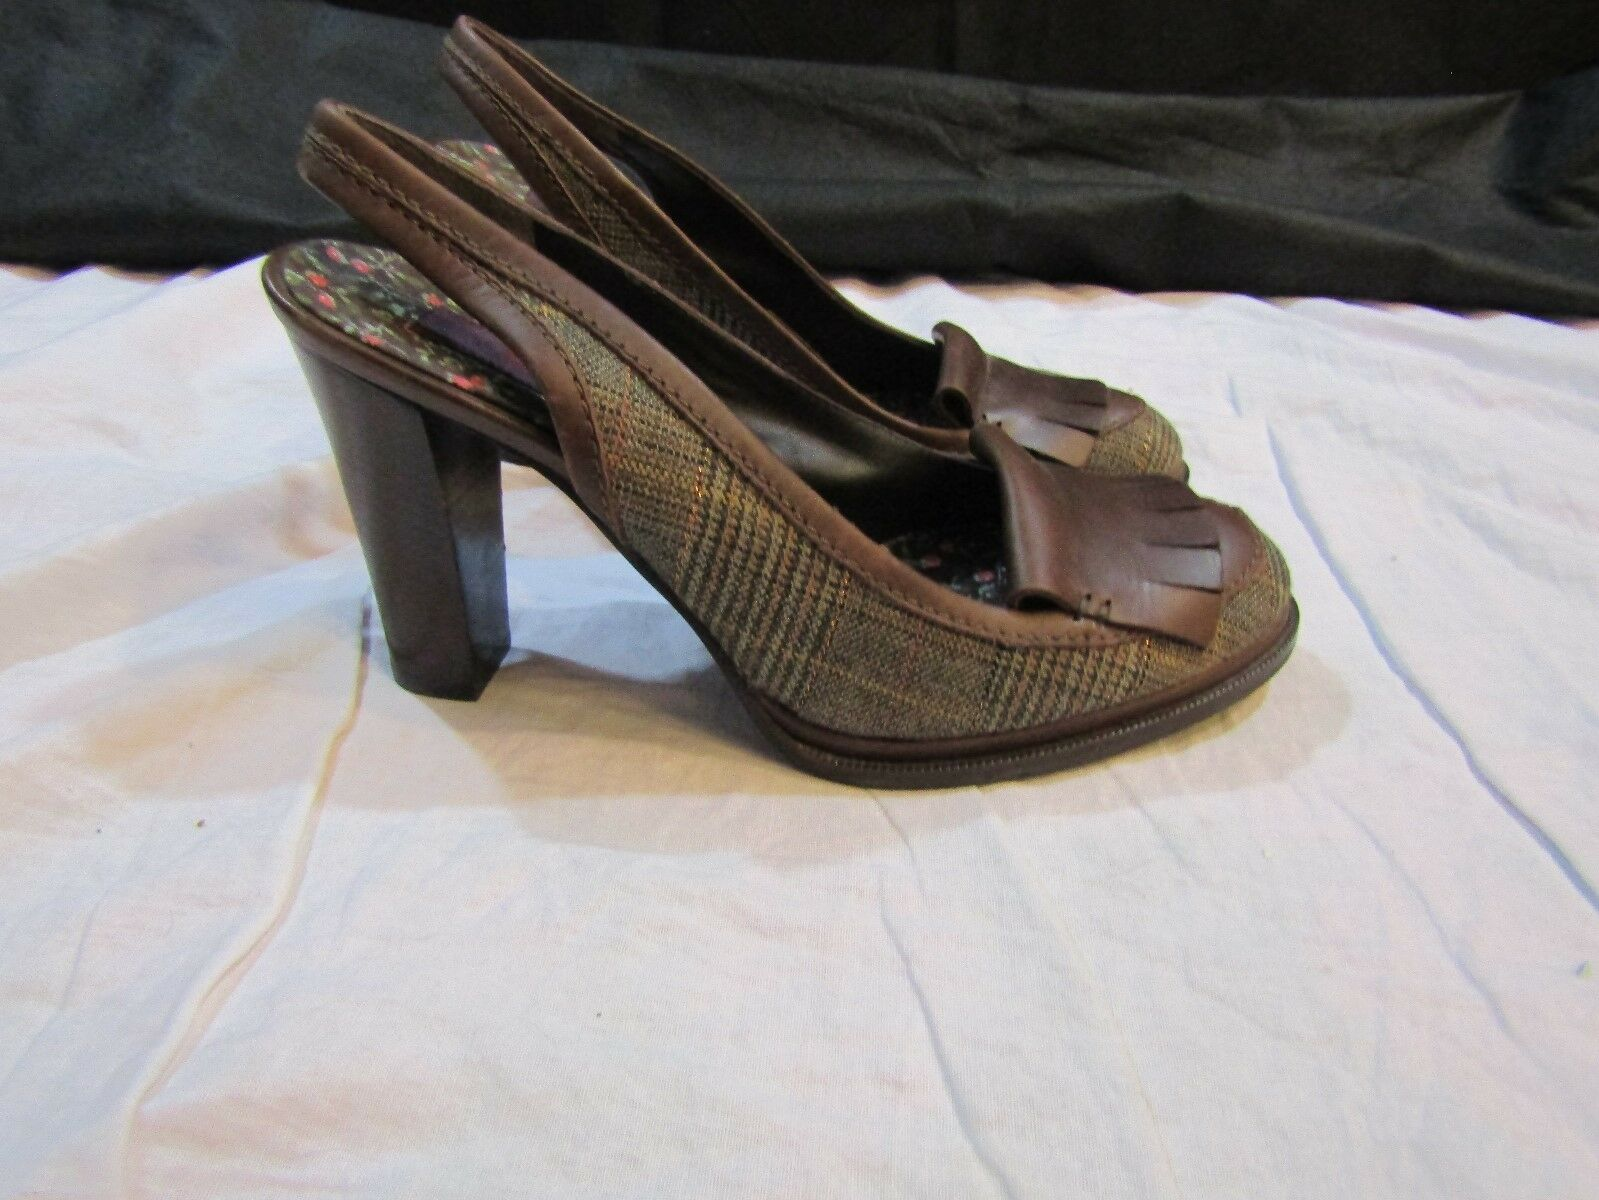 KENZO marron Plaid Woven Round Toe Slingback Pumps Pumps Pumps Heels - Taille 37.5 USA 7 NWOB 5ab522